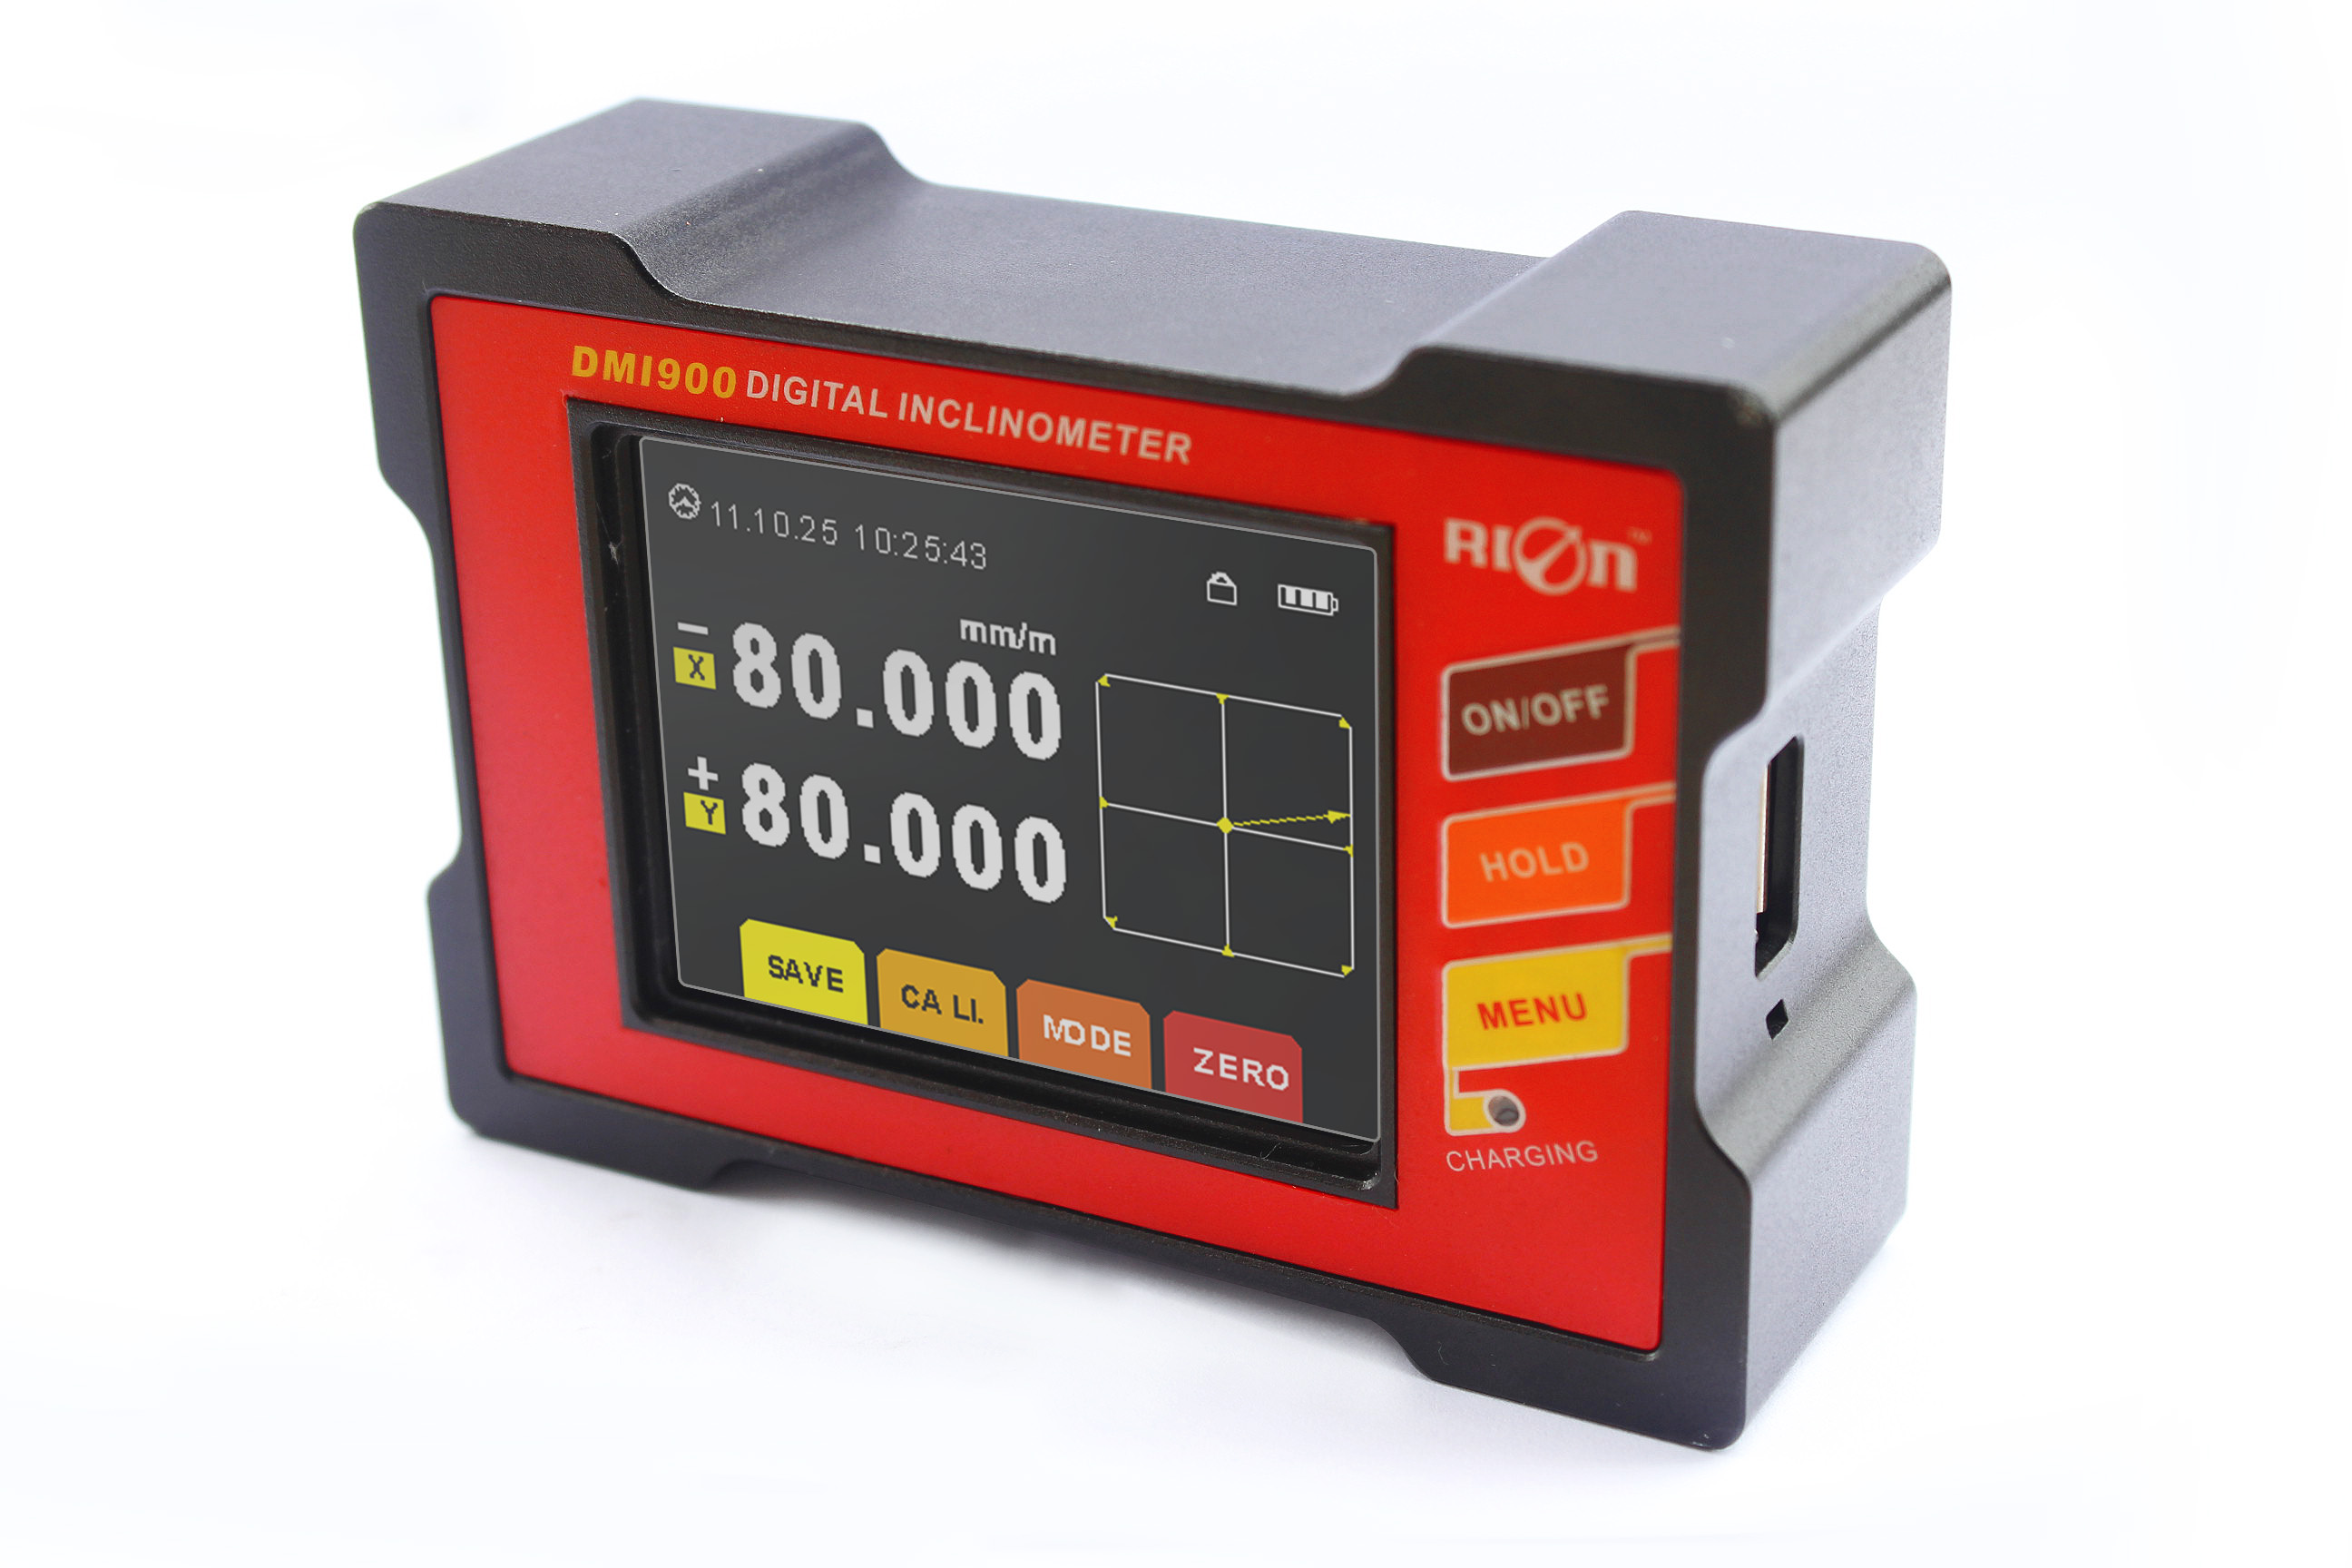 Touch screen dual axis digital inclinometer with best accuracy 0.002deg - Shenzhen Rion Technology Co., Ltd